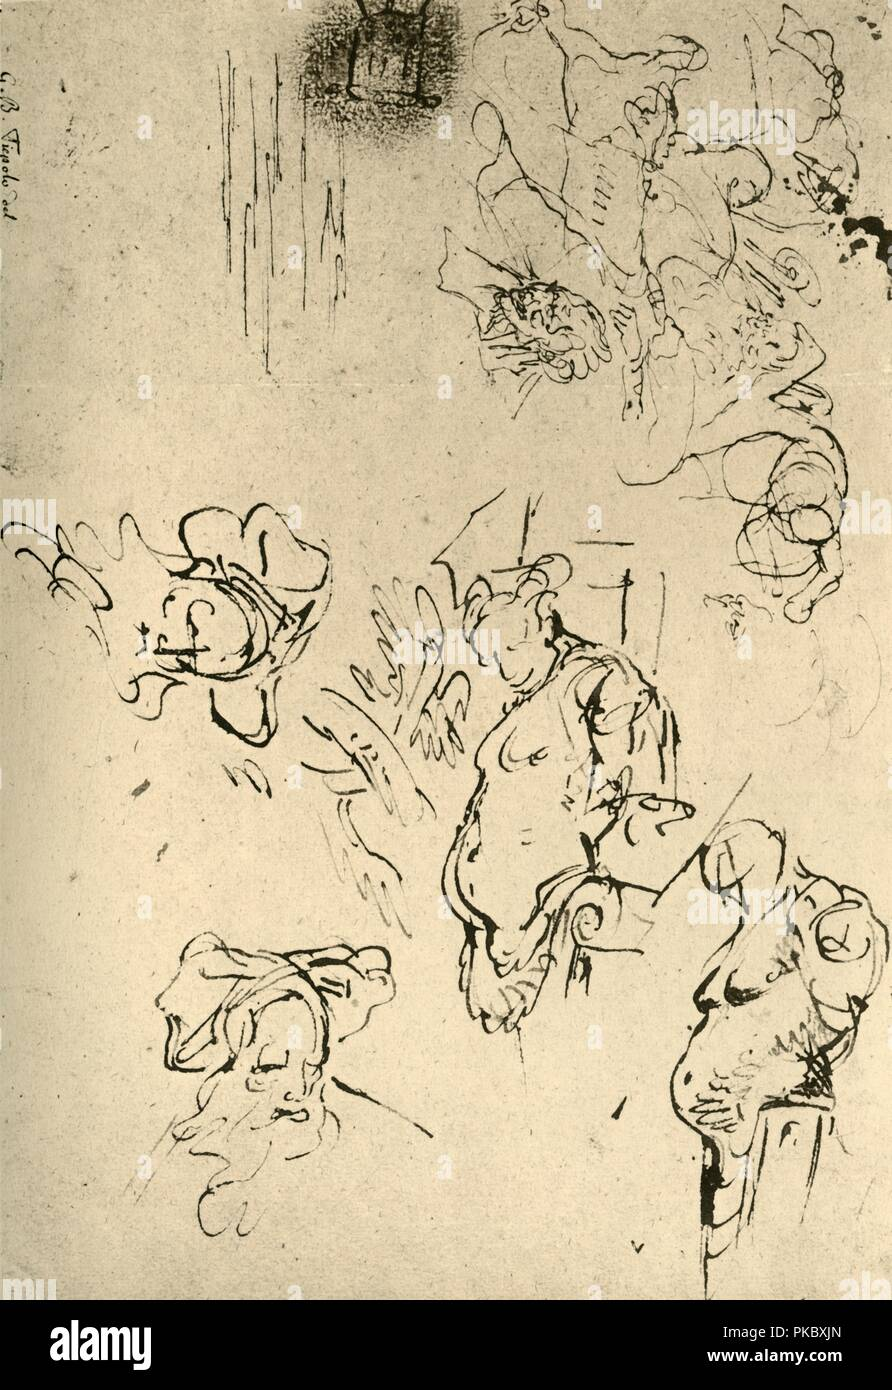 'Satyr Herms and Oriental Heads', mid 18th century, (1928). Pen on paper. At one time known to have been in the University Collection, Würzburg, Germany. Italian Venetian painter and printmaker Giovanni Battista Tiepolo (1696-1770), worked not only in Italy, but also in Germany and Spain. He was commissioned to carry out frescoes in churches and palaces, and was elected President of the Academy of Padua. As well as his large-scale majestic works, he also produced etchings and oil paintings, and is widely regarded as one of the most important artists of the period. Illustration from The Dr - Stock Image